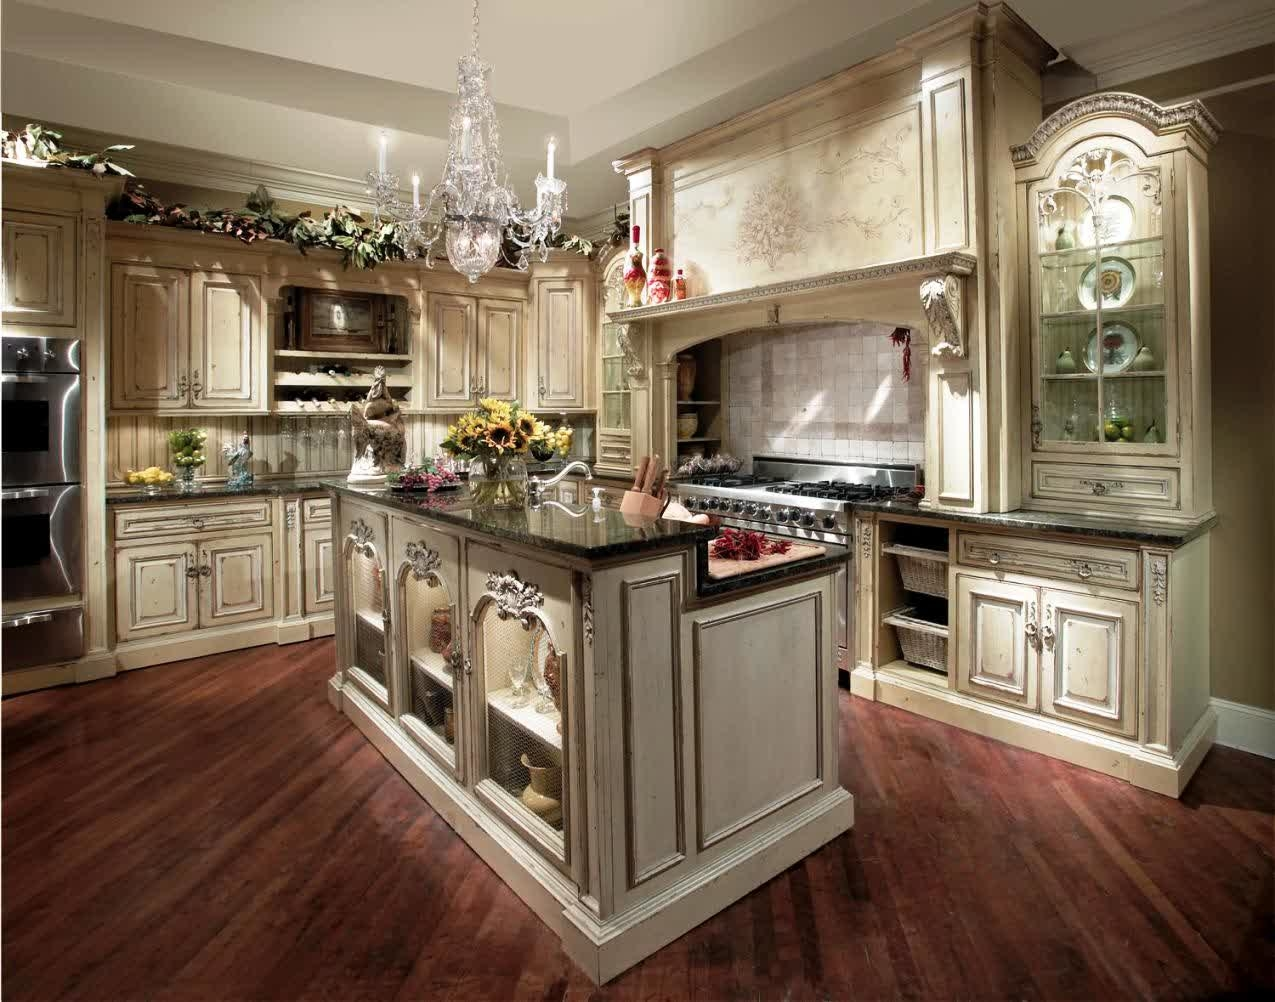 Western Looking Kitchen Cabinets